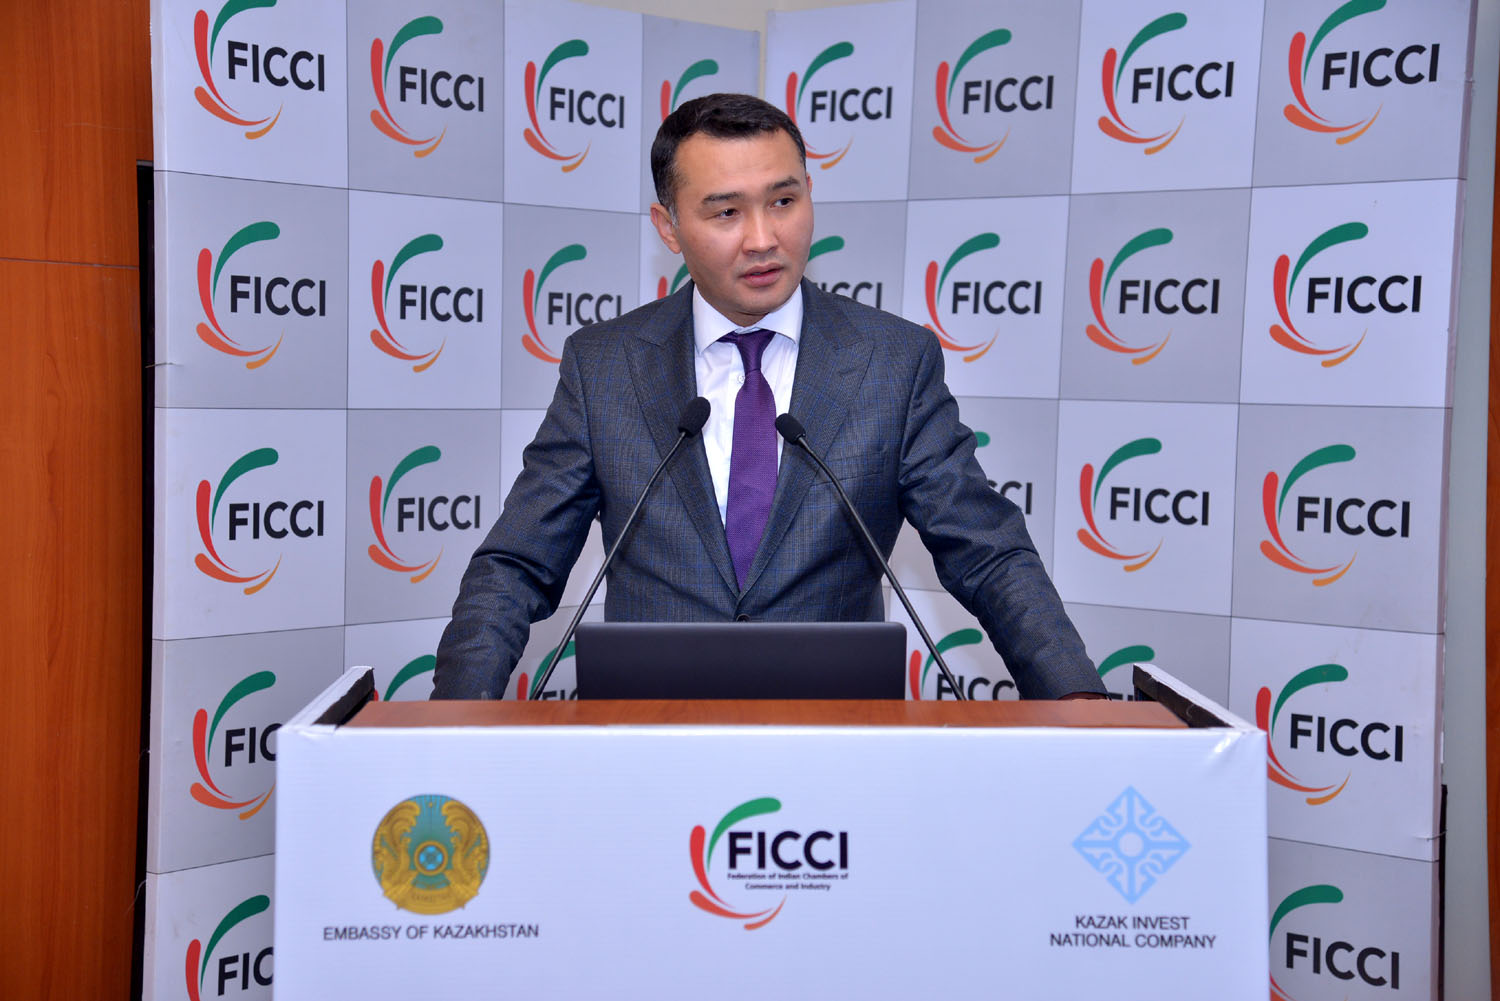 Kazakhstan, Indian, Business, Kazakh-Indian Investment Forum, Ambassador, Bulat Sarsenbayev, Saparbek Tuyakbayev, Kazakh Invest, NewsMobile, Mobile, News, India